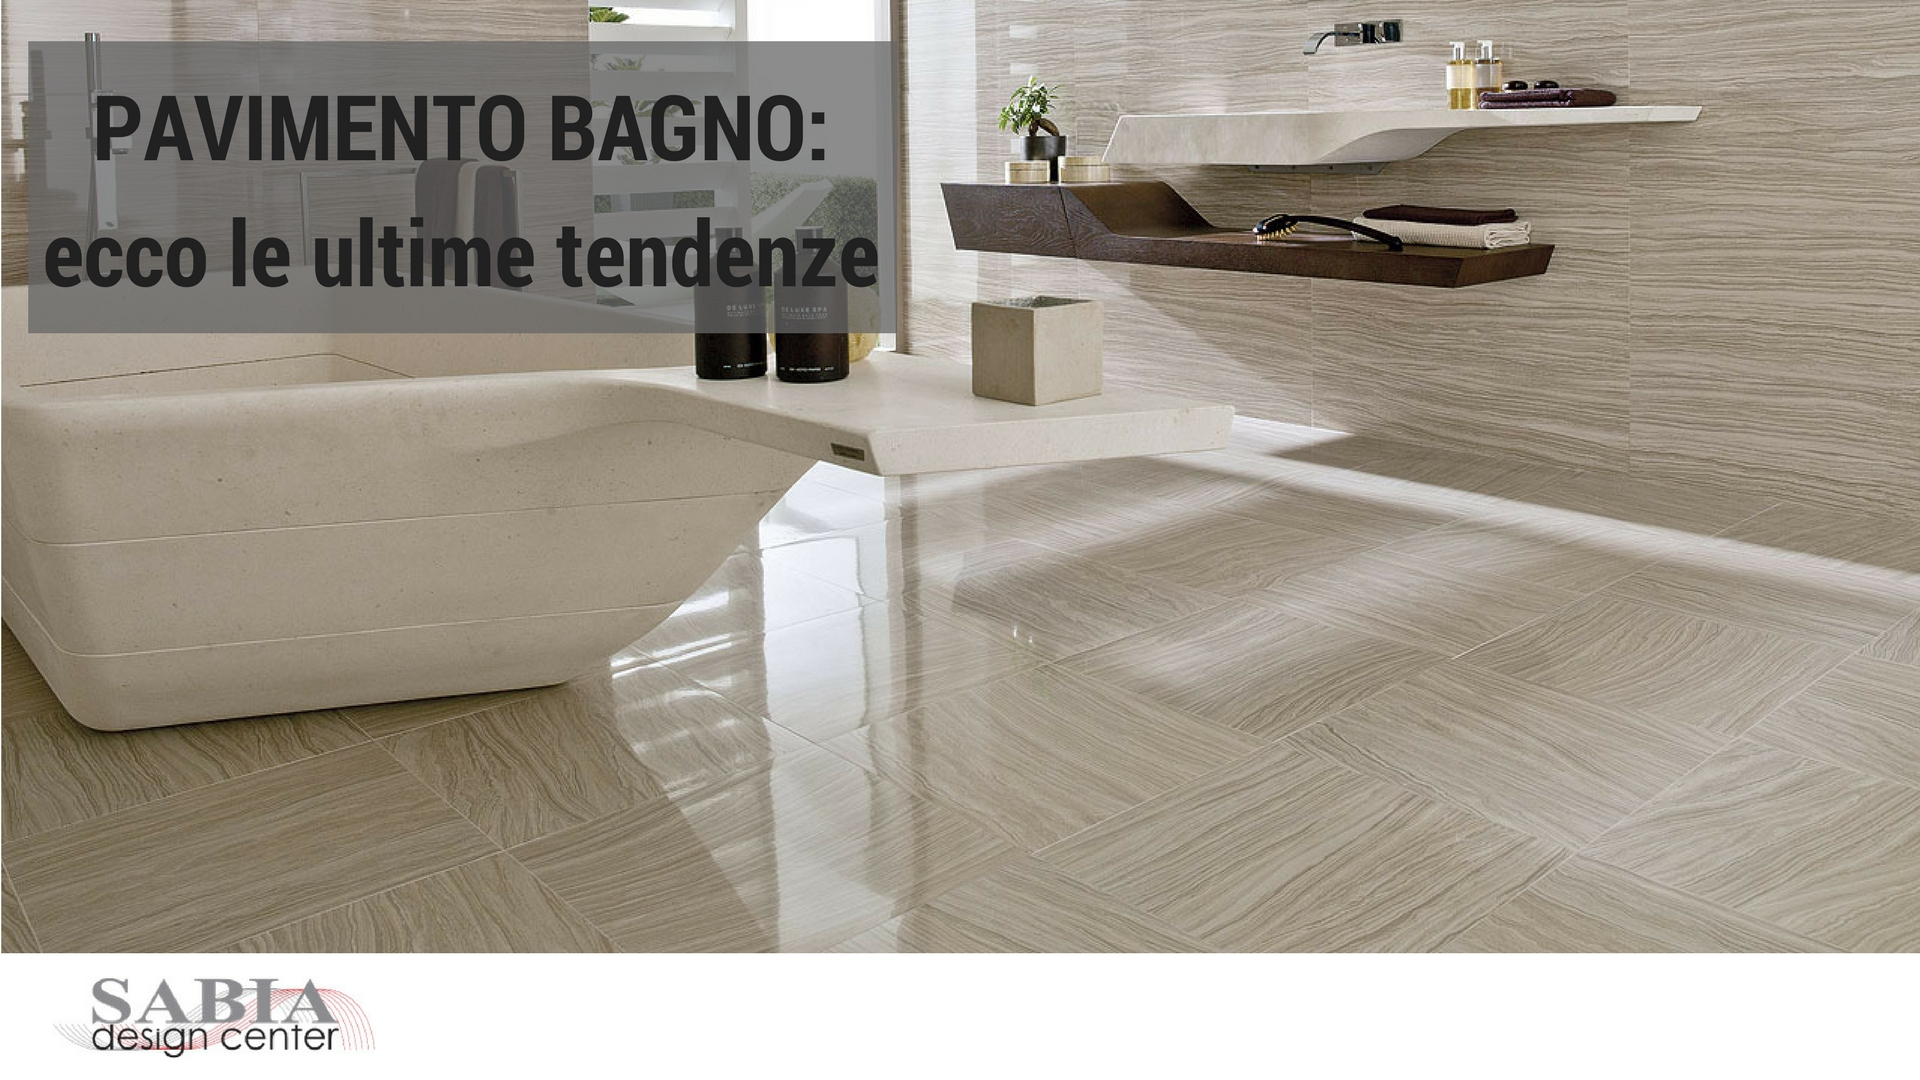 Pavimento Bagno Ultime Tendenze Sabia Design Center